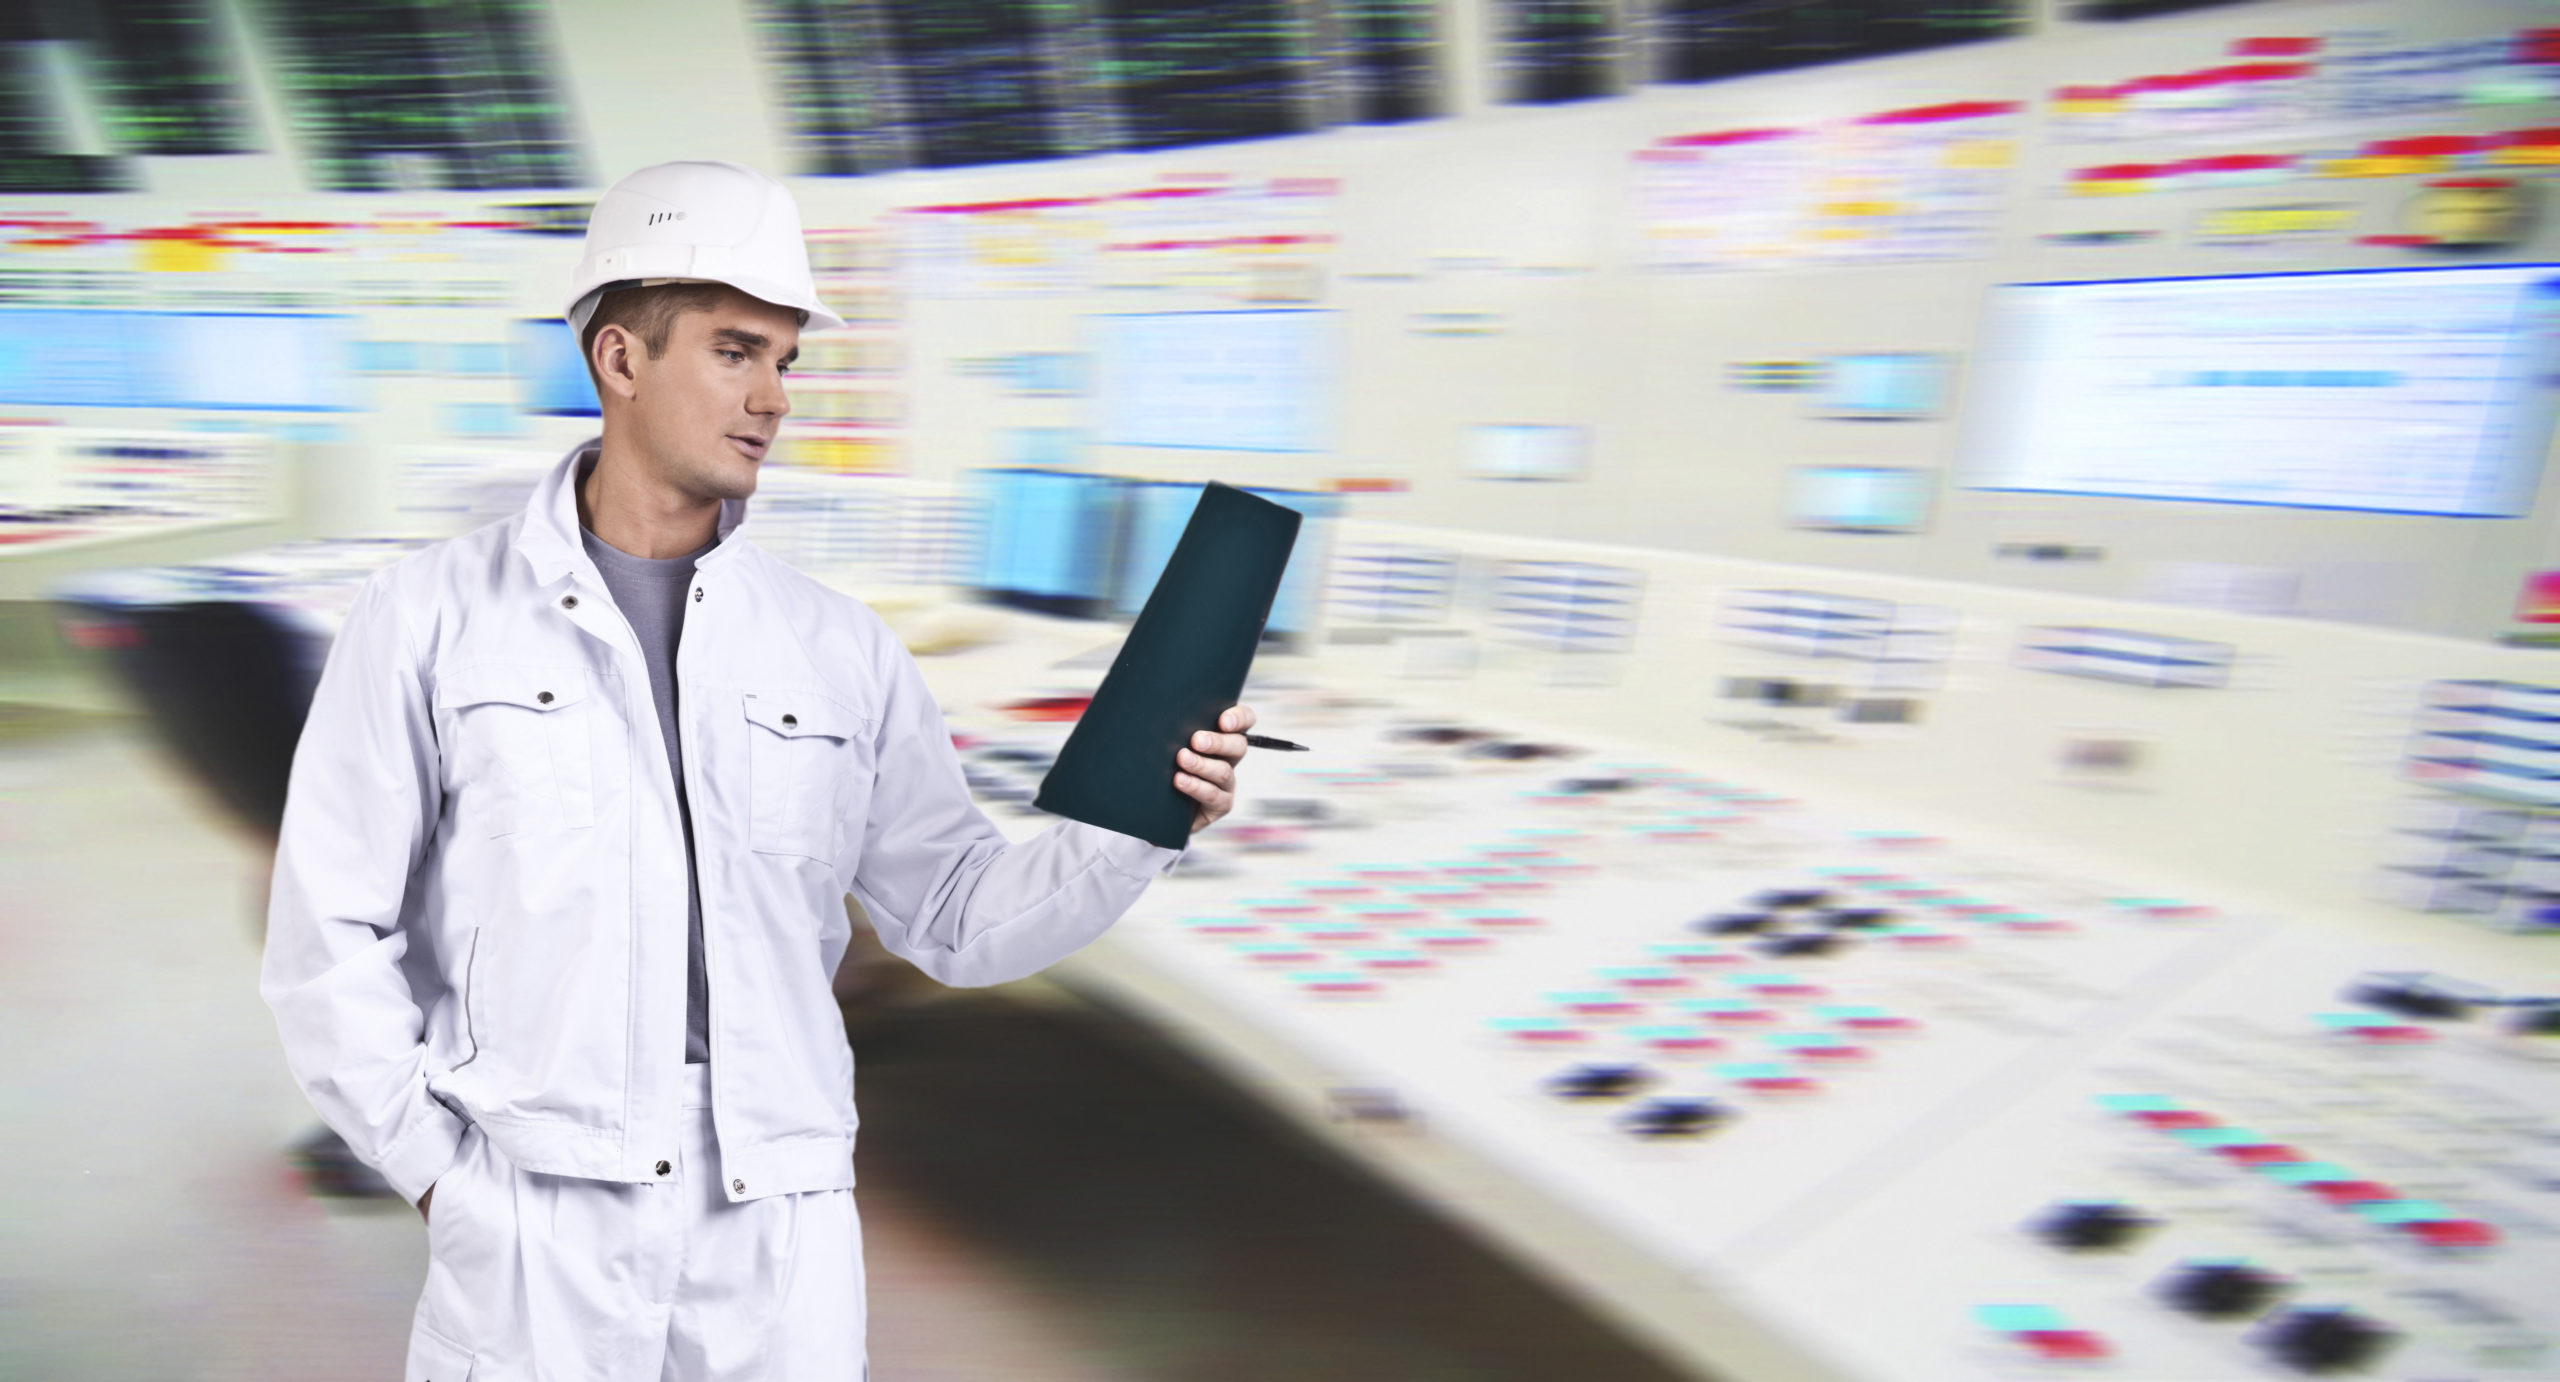 Automation & Industrial Control Cablehttps://www.ocp.com/wp-content/uploads/IMG_2005-304x171.jpg